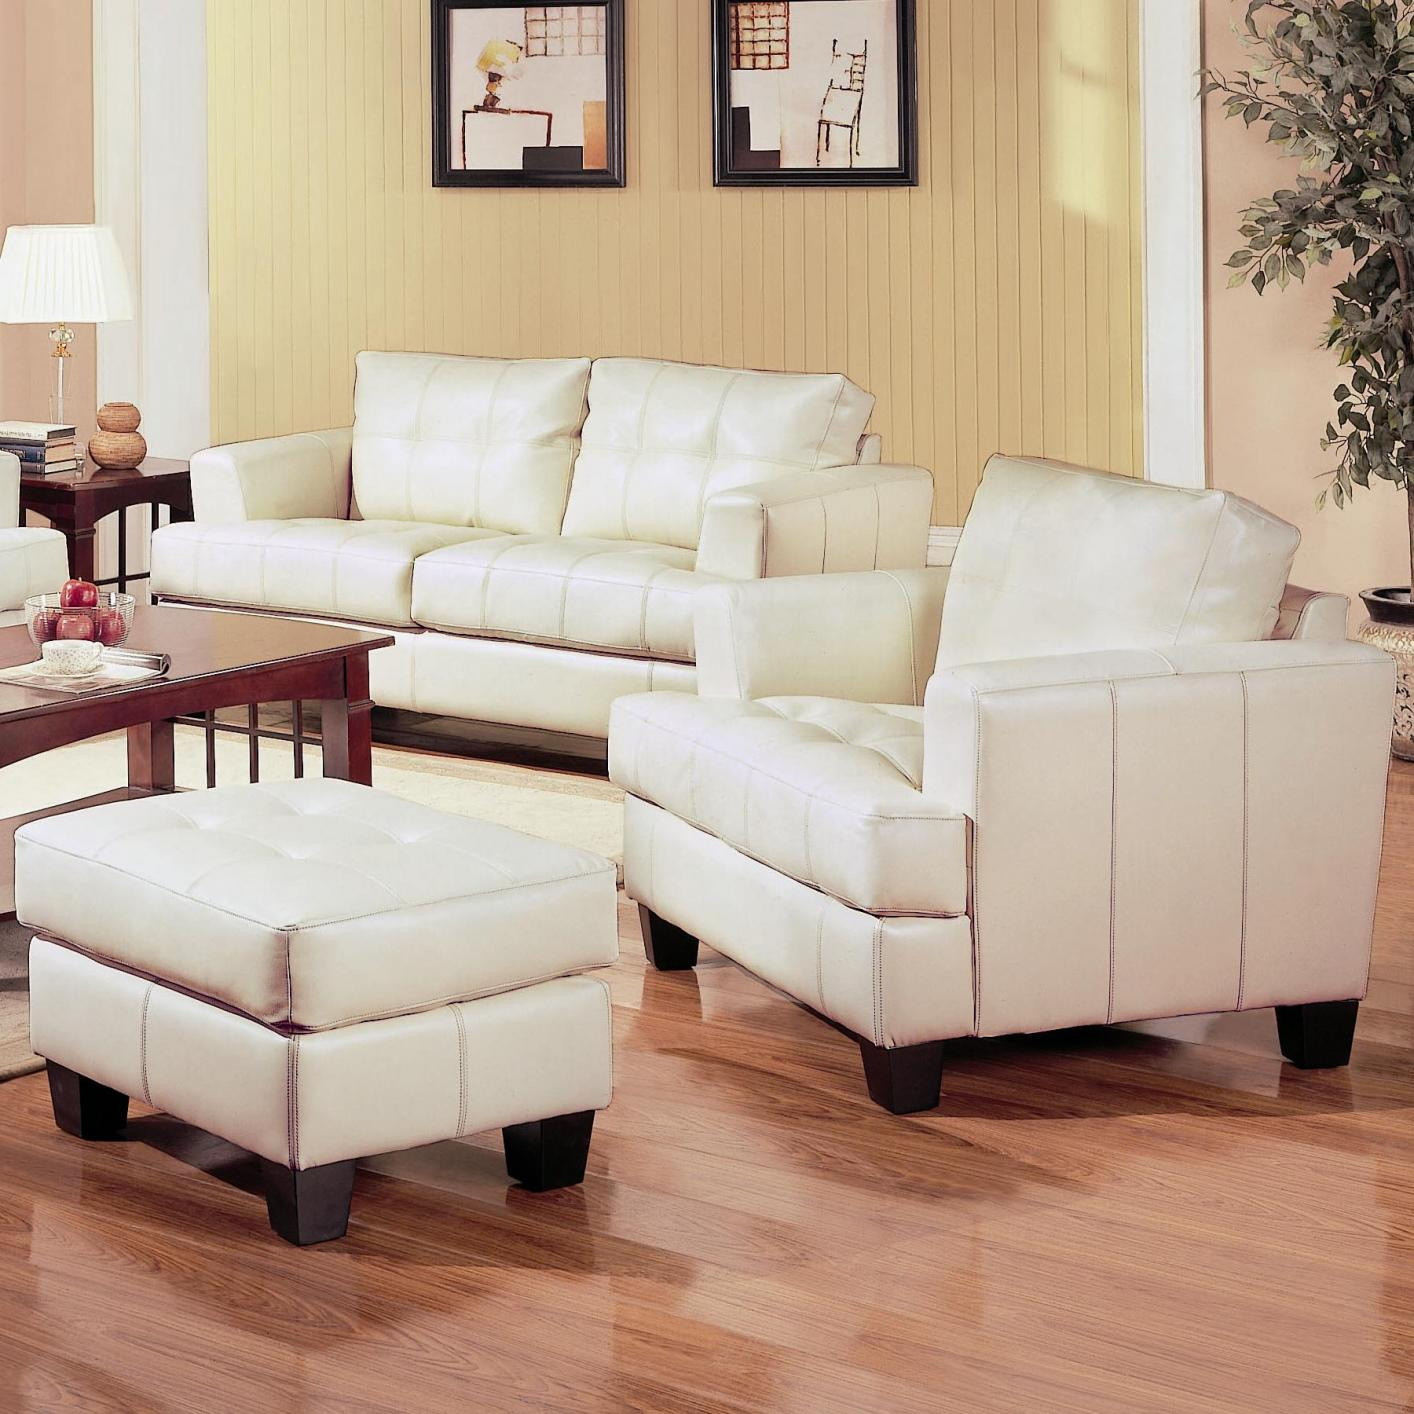 stealasofa reviews hemnes sofa table as tv stand samuel beige leather ottoman steal a furniture